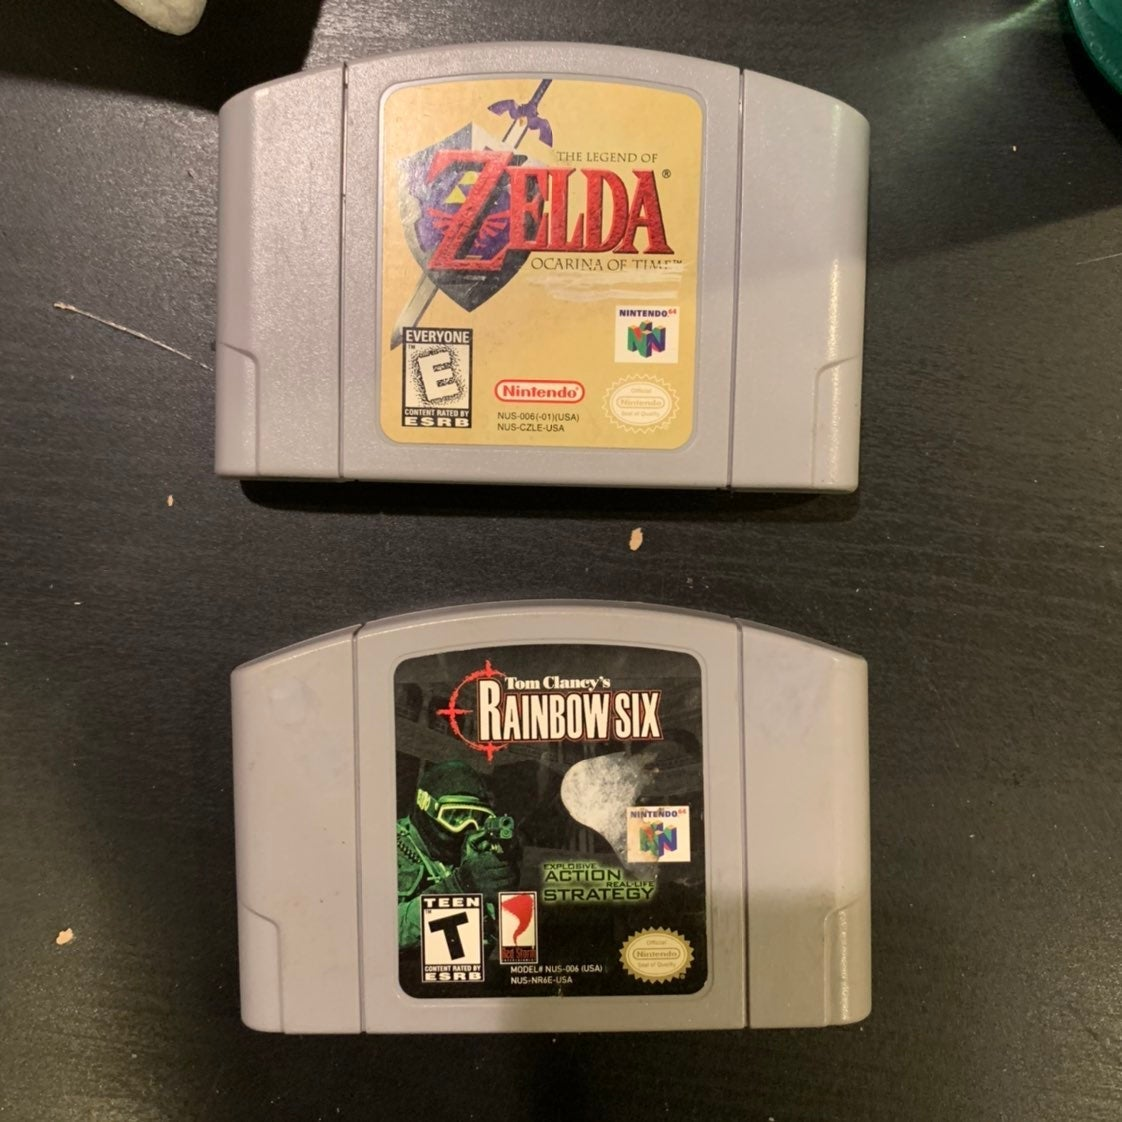 Legend of Zelda Ocarina of Time and ithe